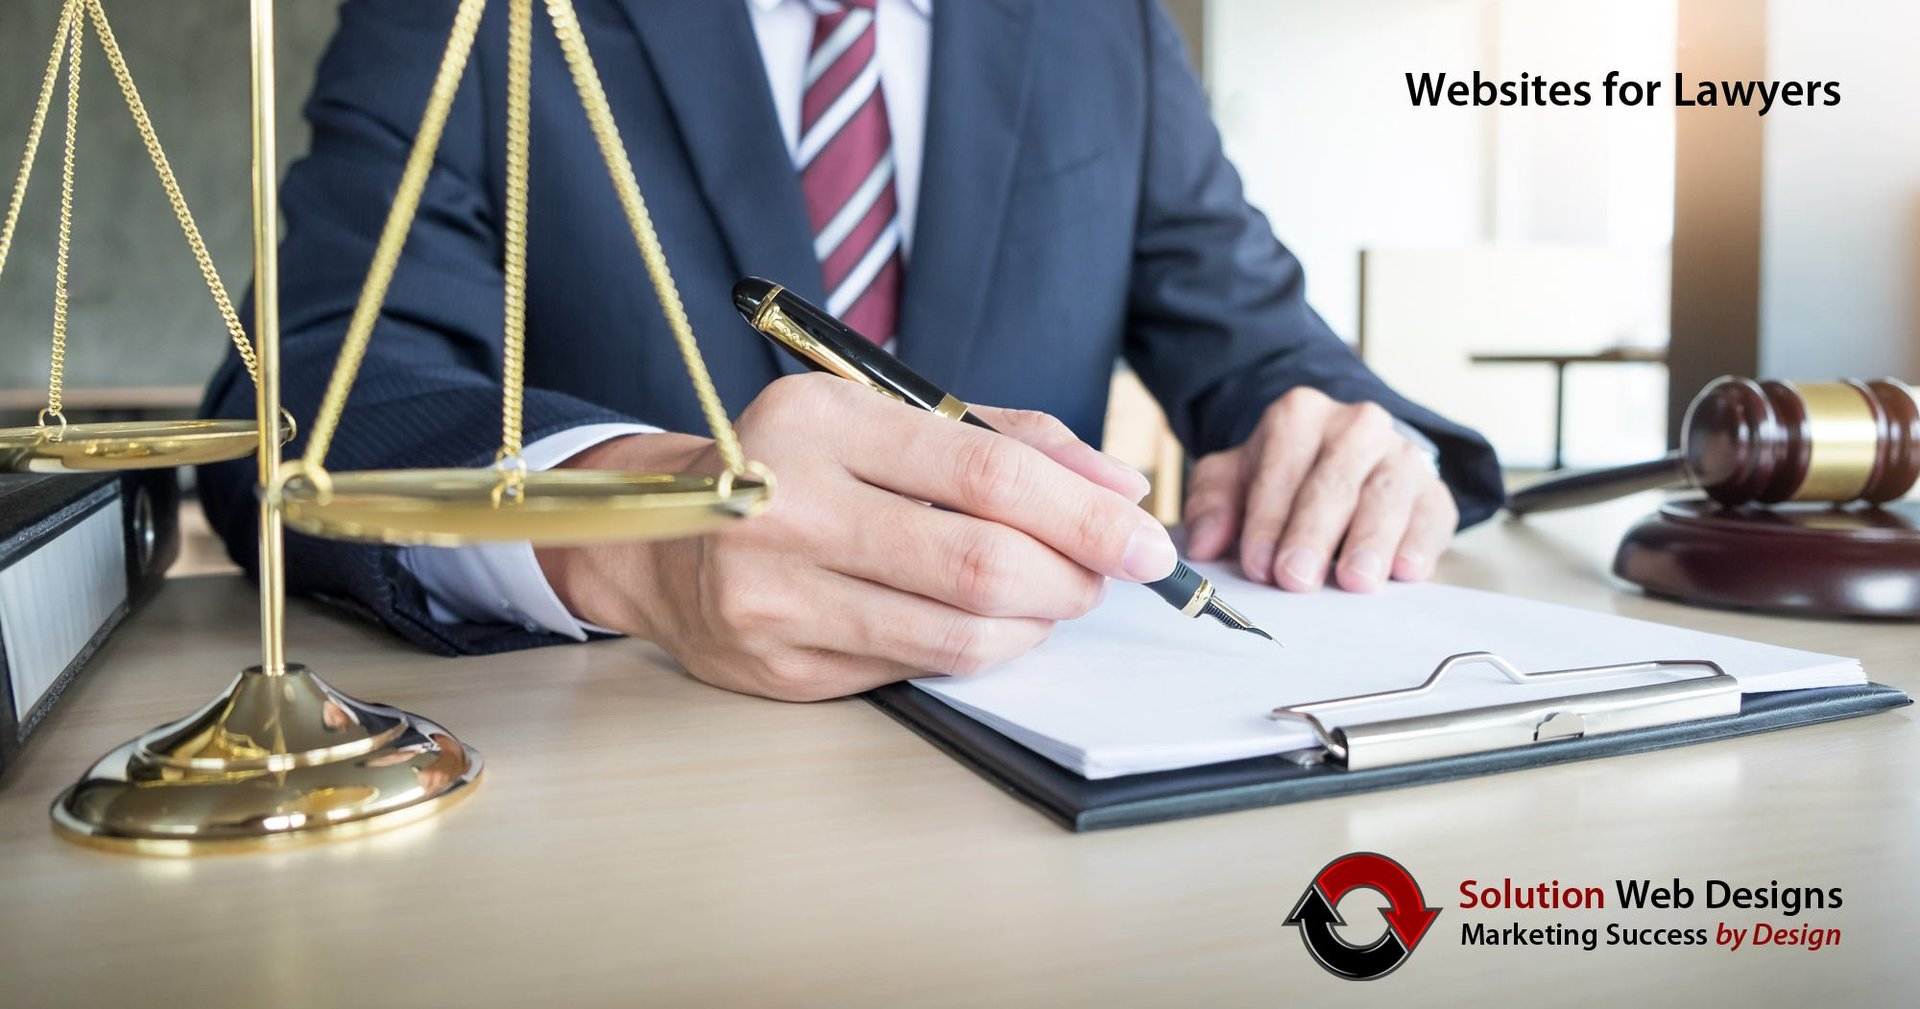 Websites for Lawyers - Law Firm Marketing Agency - Solution Web Designs